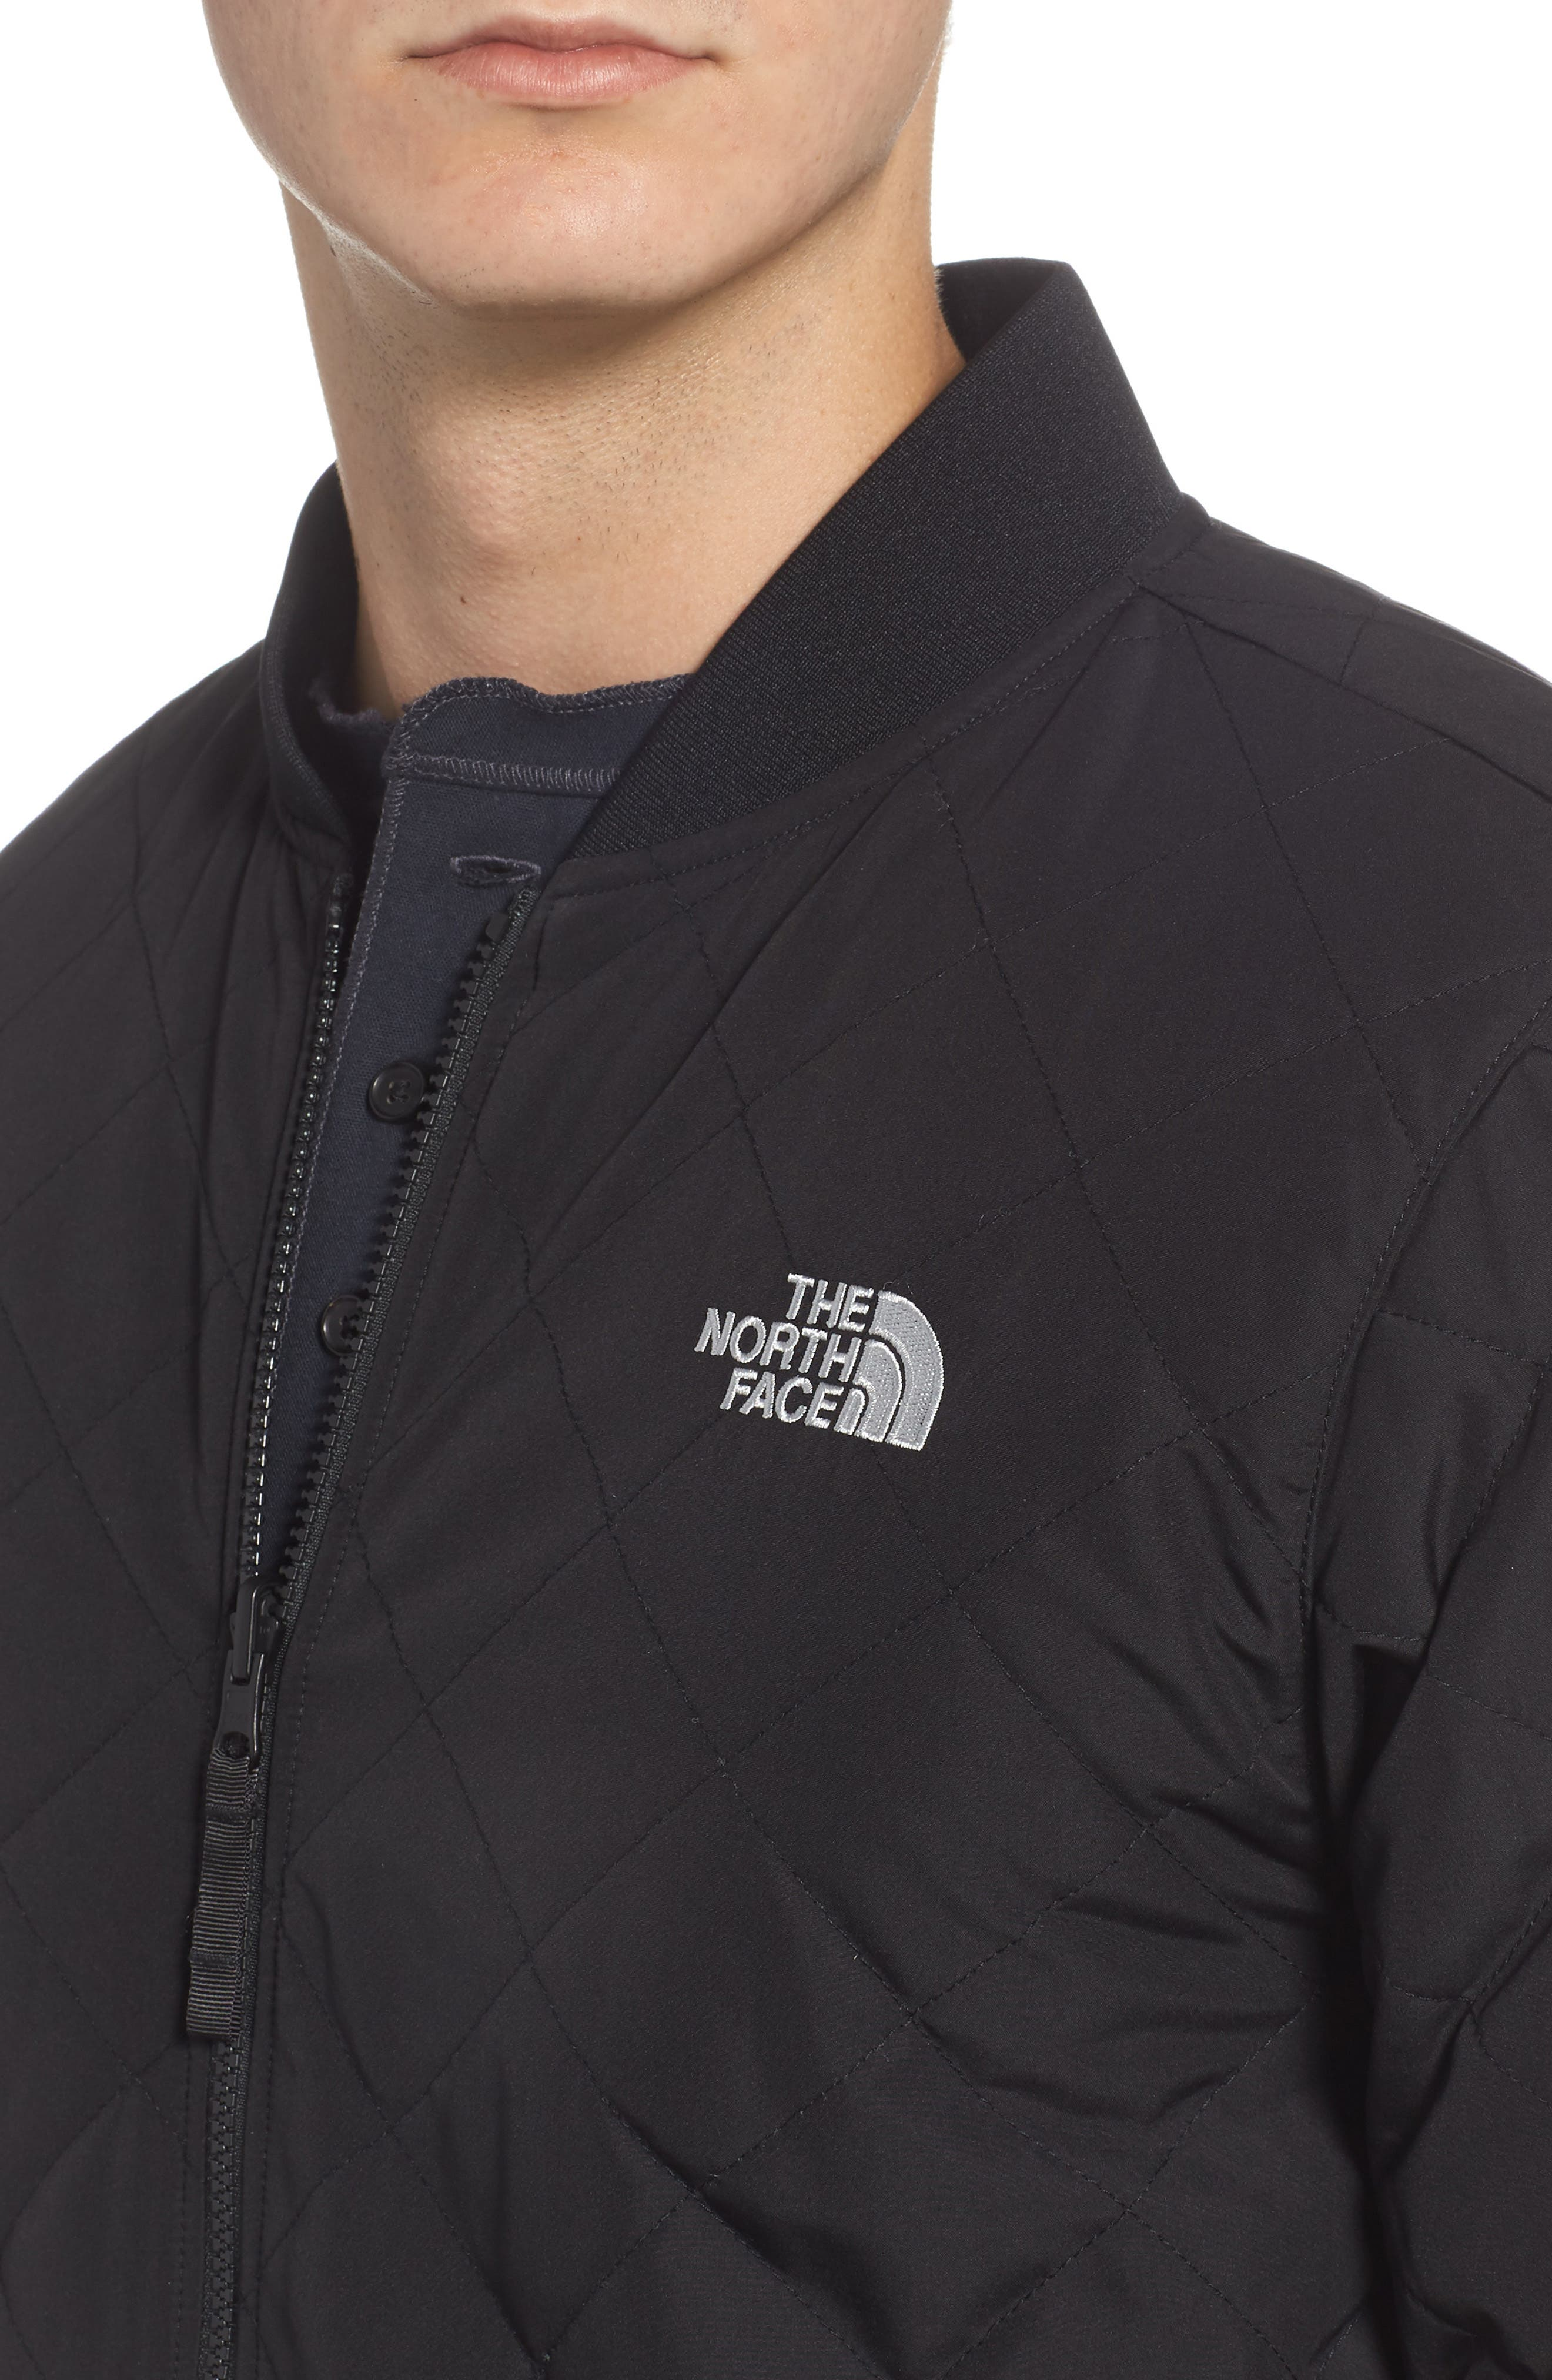 THE NORTH FACE, Jester Reversible Bomber Jacket, Alternate thumbnail 6, color, 001